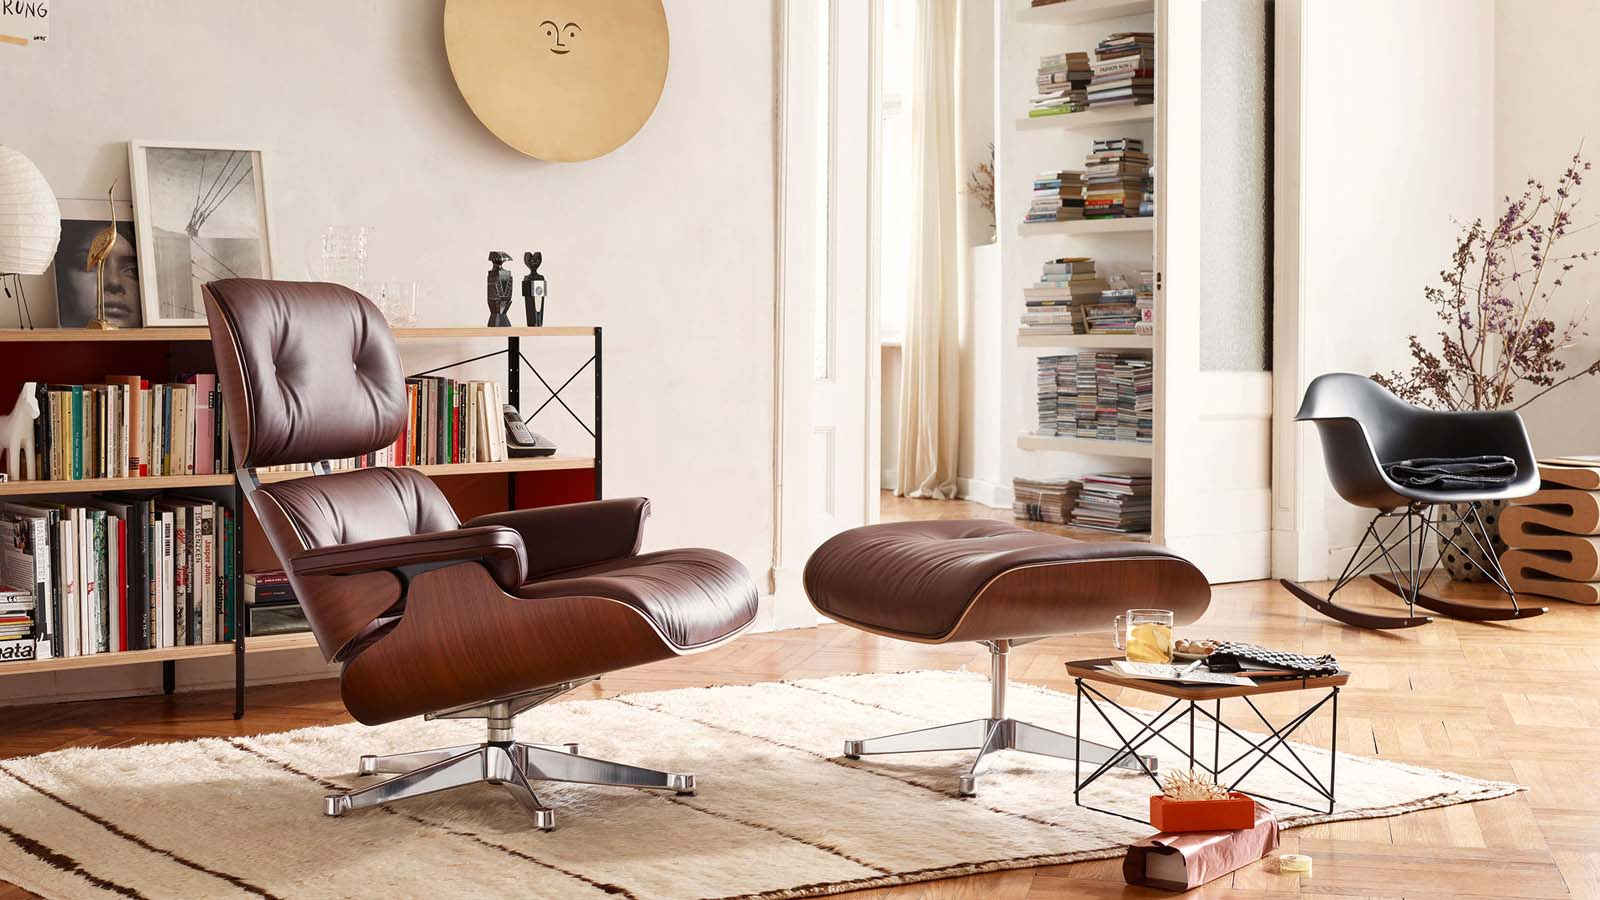 Groovy Eames Lounge Chair Storia E Caratteristiche Di Unicona Short Links Chair Design For Home Short Linksinfo